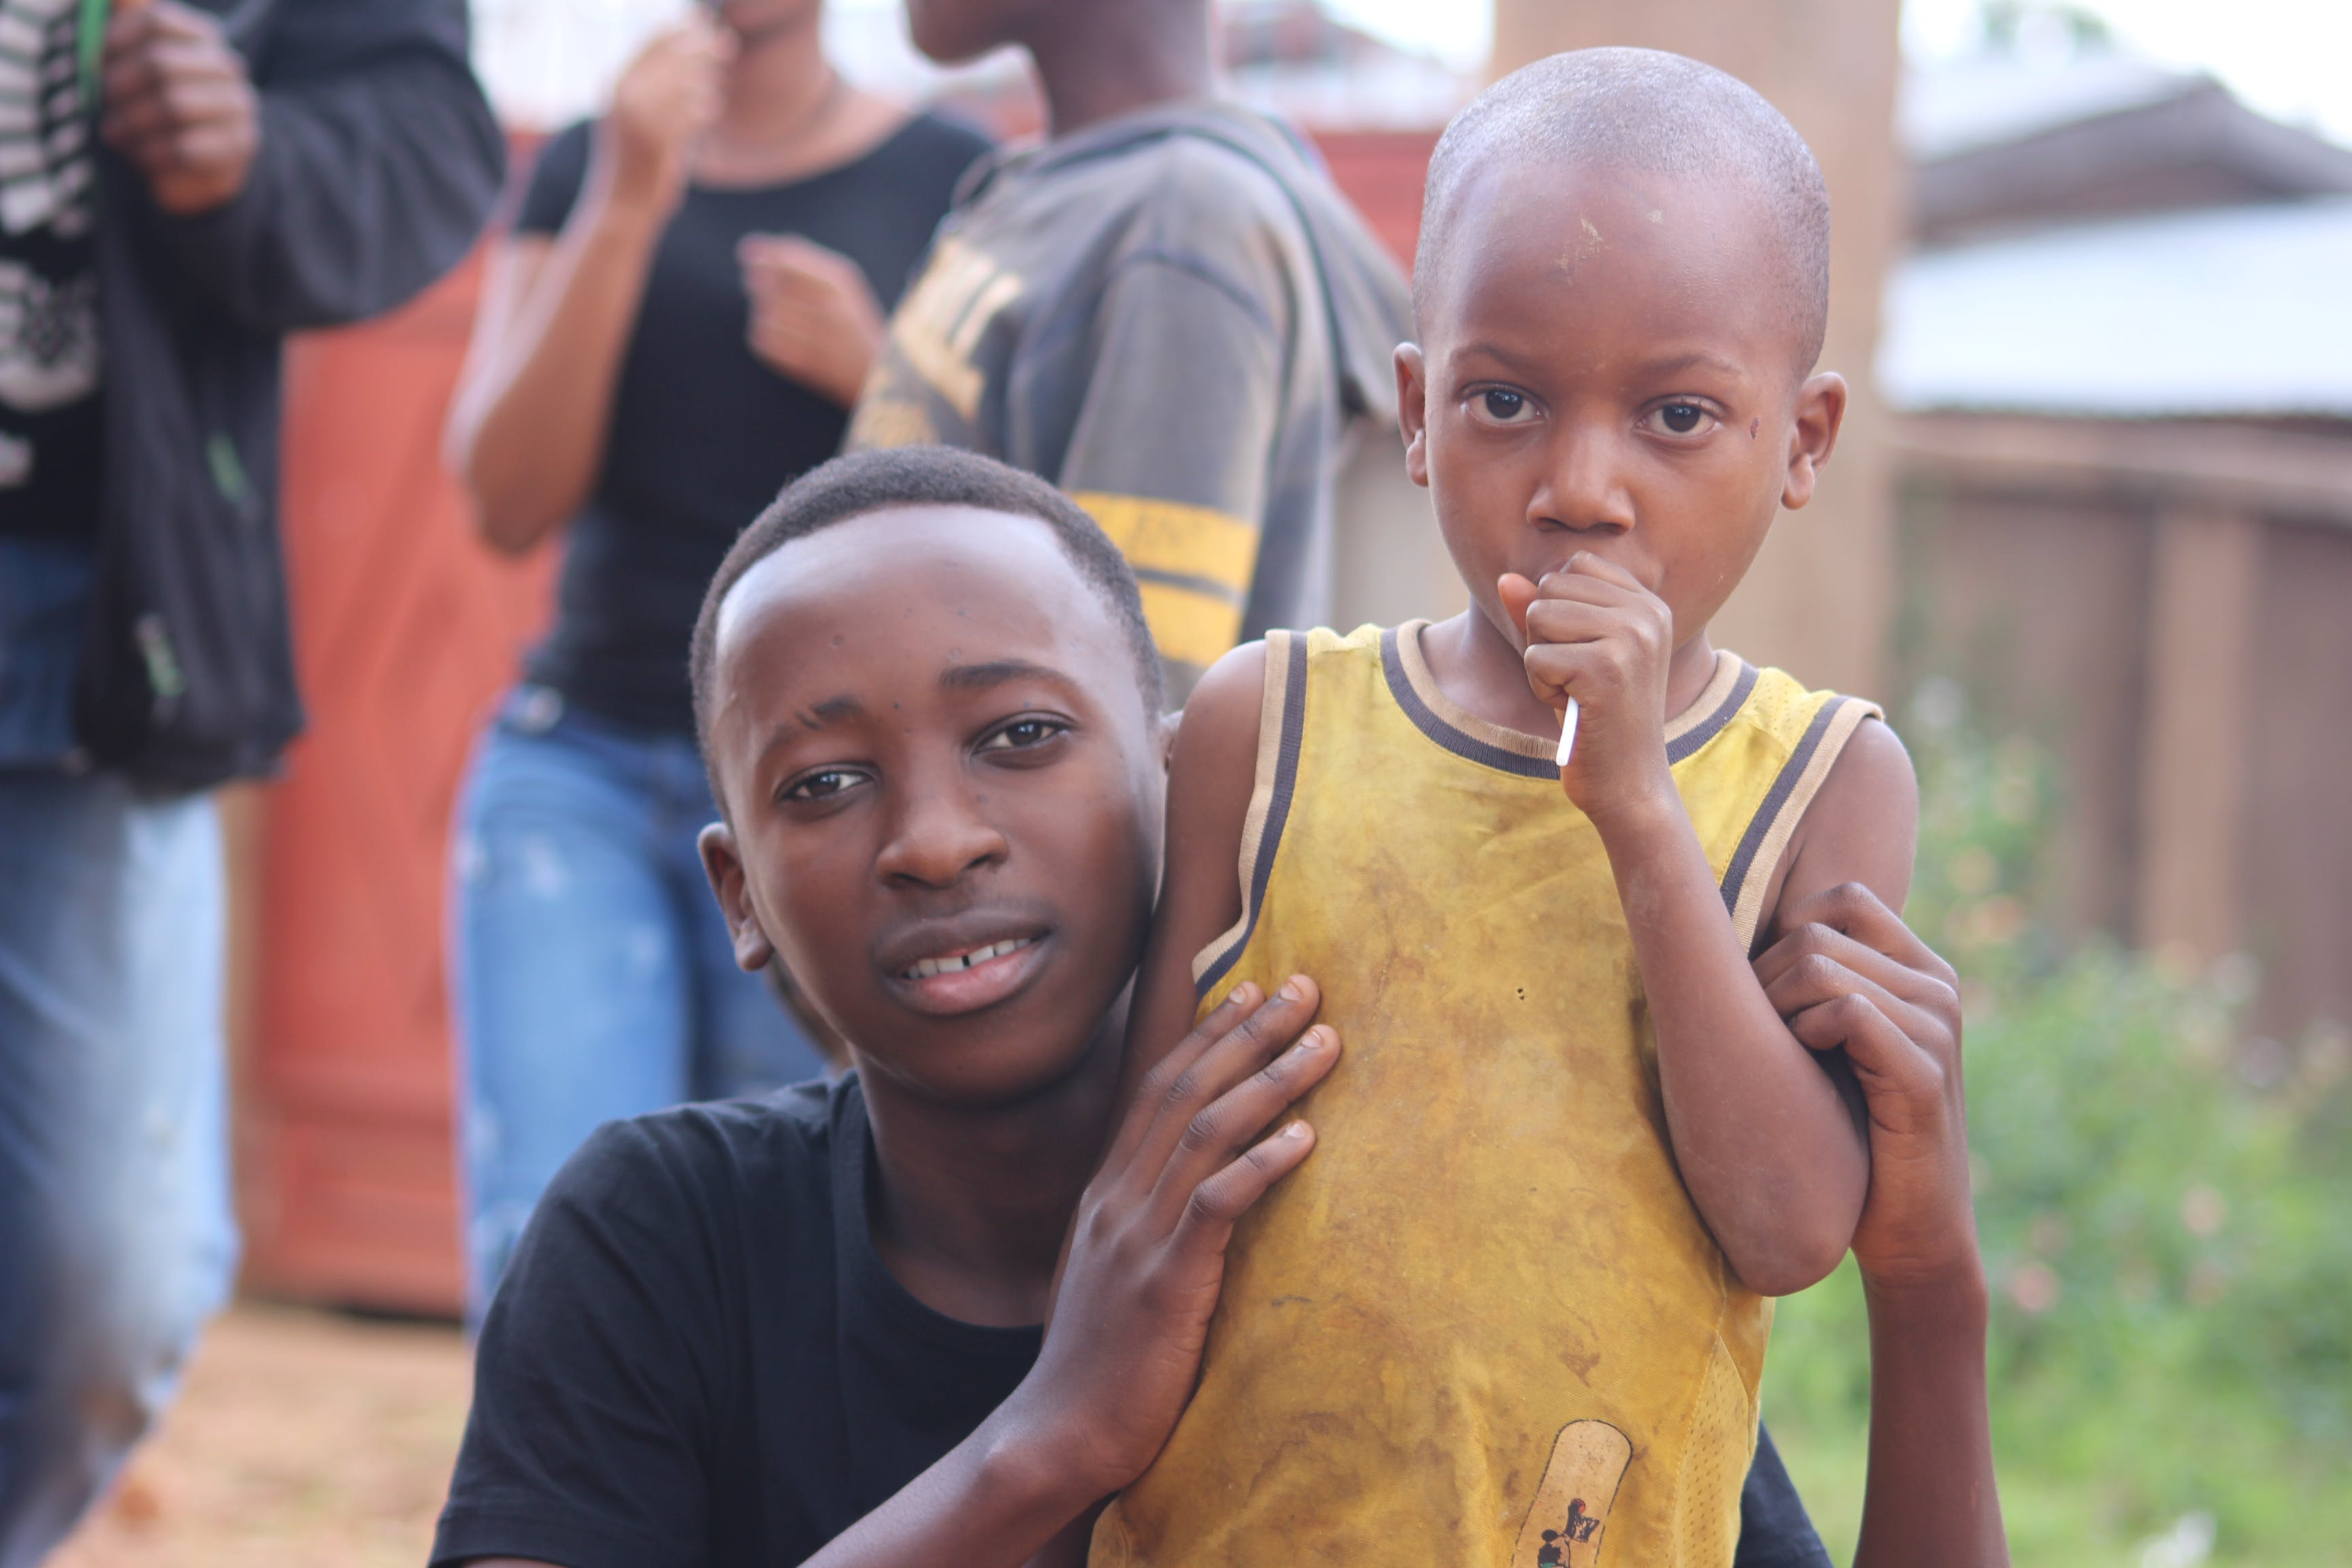 Man And Boy Wearing Black And Yellow Shirts